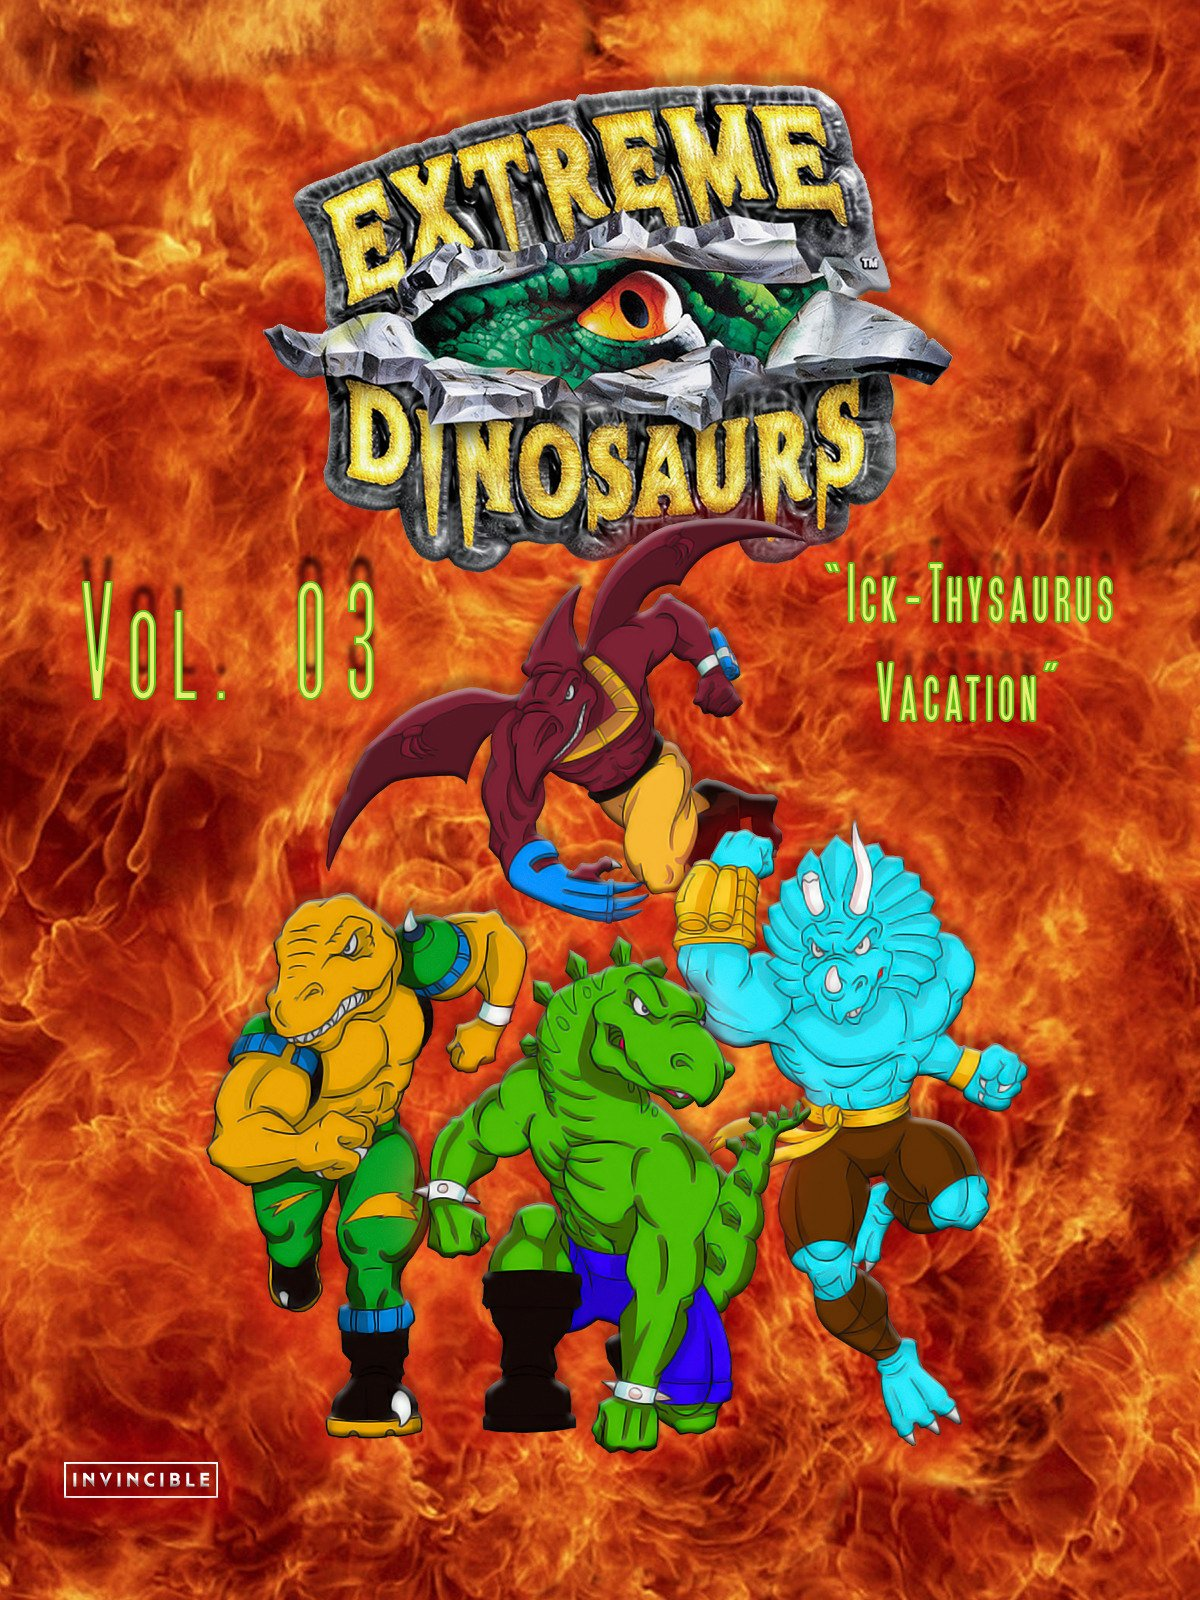 Extreme Dinosaurs Vol. 03Ick-Thysarus Vacation